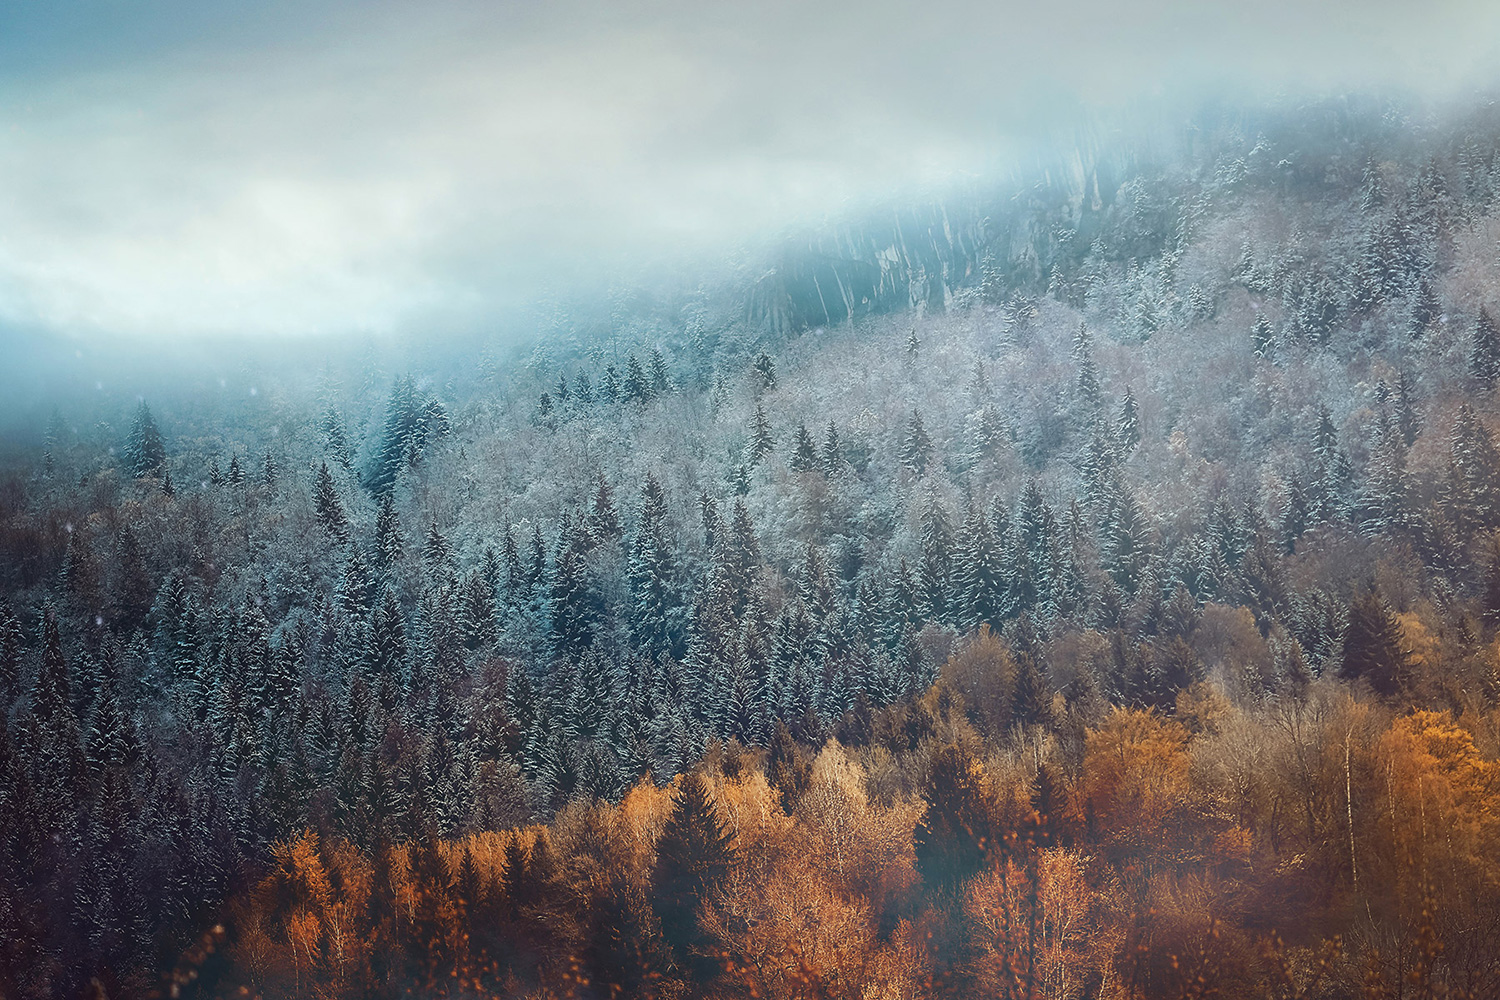 Raphaelle- Monvoisin, Edge of Seasons, French Alps in Winter